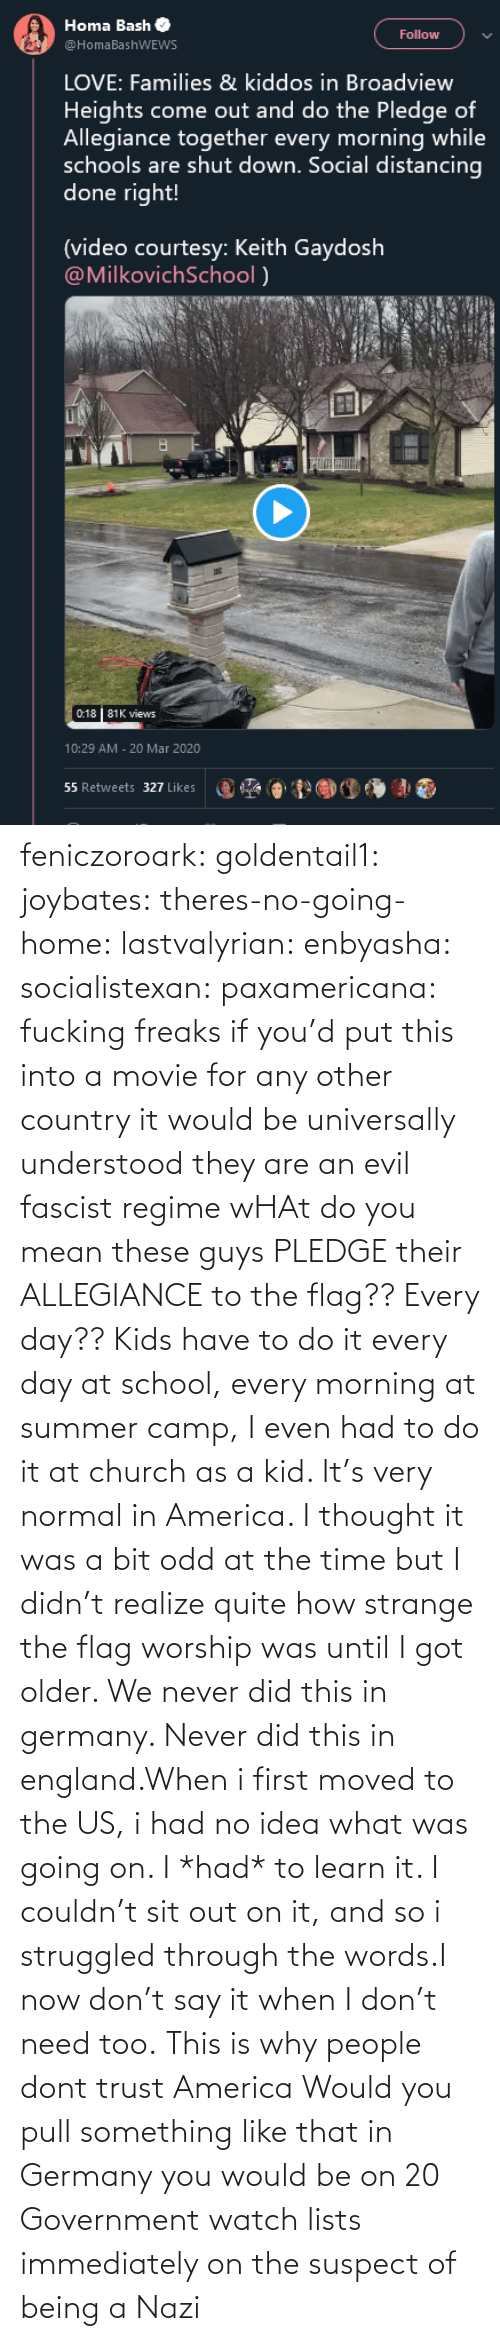 Evil: feniczoroark:  goldentail1:  joybates:  theres-no-going-home:  lastvalyrian:  enbyasha:  socialistexan:  paxamericana: fucking freaks       if you'd put this into a movie for any other country it would be universally understood they are an evil fascist regime    wHAt do you mean these guys PLEDGE their ALLEGIANCE to the flag?? Every day??   Kids have to do it every day at school, every morning at summer camp, I even had to do it at church as a kid. It's very normal in America. I thought it was a bit odd at the time but I didn't realize quite how strange the flag worship was until I got older.    We never did this in germany. Never did this in england.When i first moved to the US, i had no idea what was going on. I *had* to learn it. I couldn't sit out on it, and so i struggled through the words.I now don't say it when I don't need too.   This is why people dont trust America    Would you pull something like that in Germany you would be on 20 Government watch lists immediately on the suspect of being a Nazi